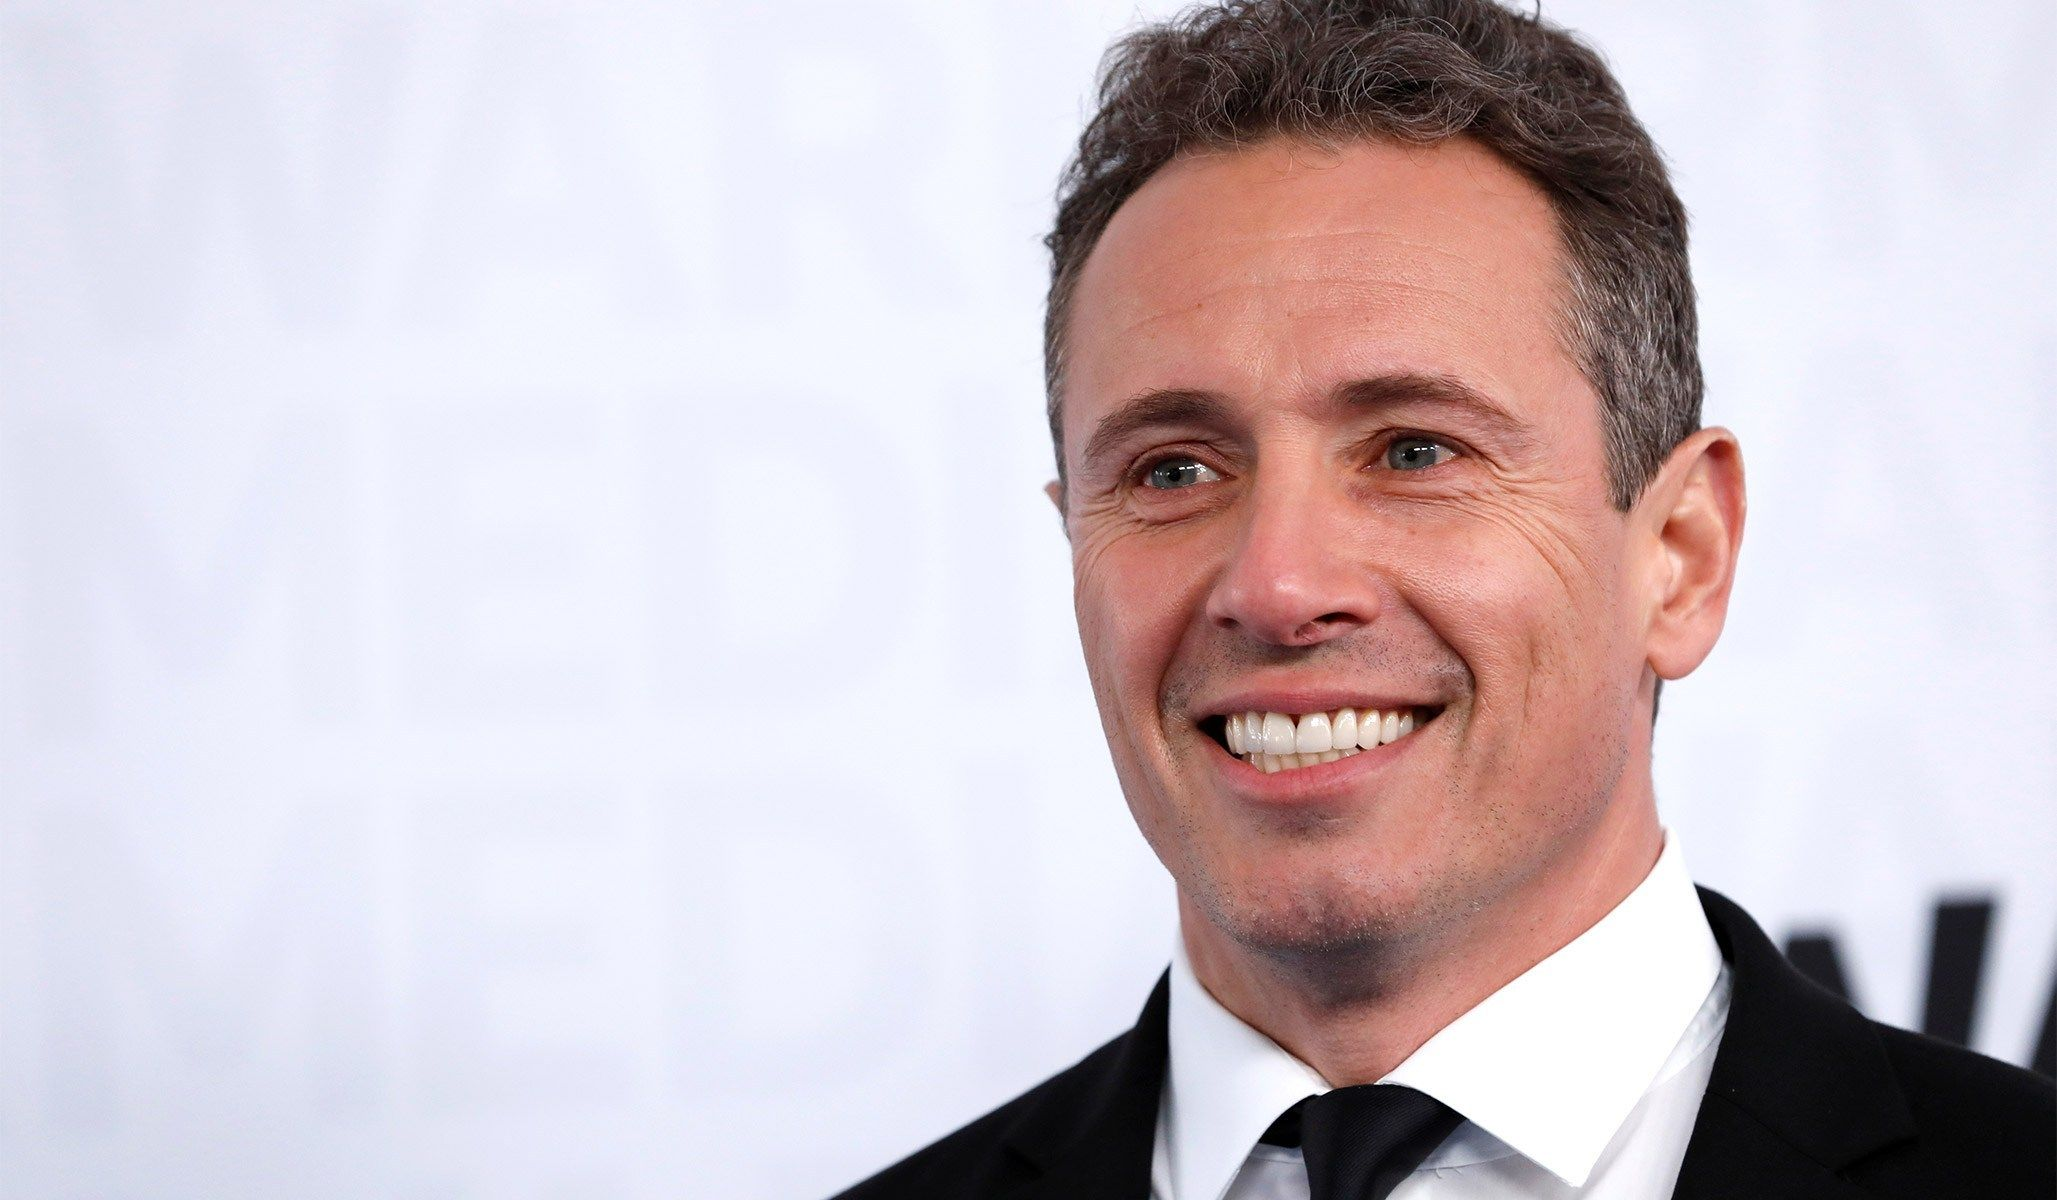 Chris Cuomo Fredo An Insider S Guide To Italian Insults National Review Chris Cuomo Cnn Anchors Insulting